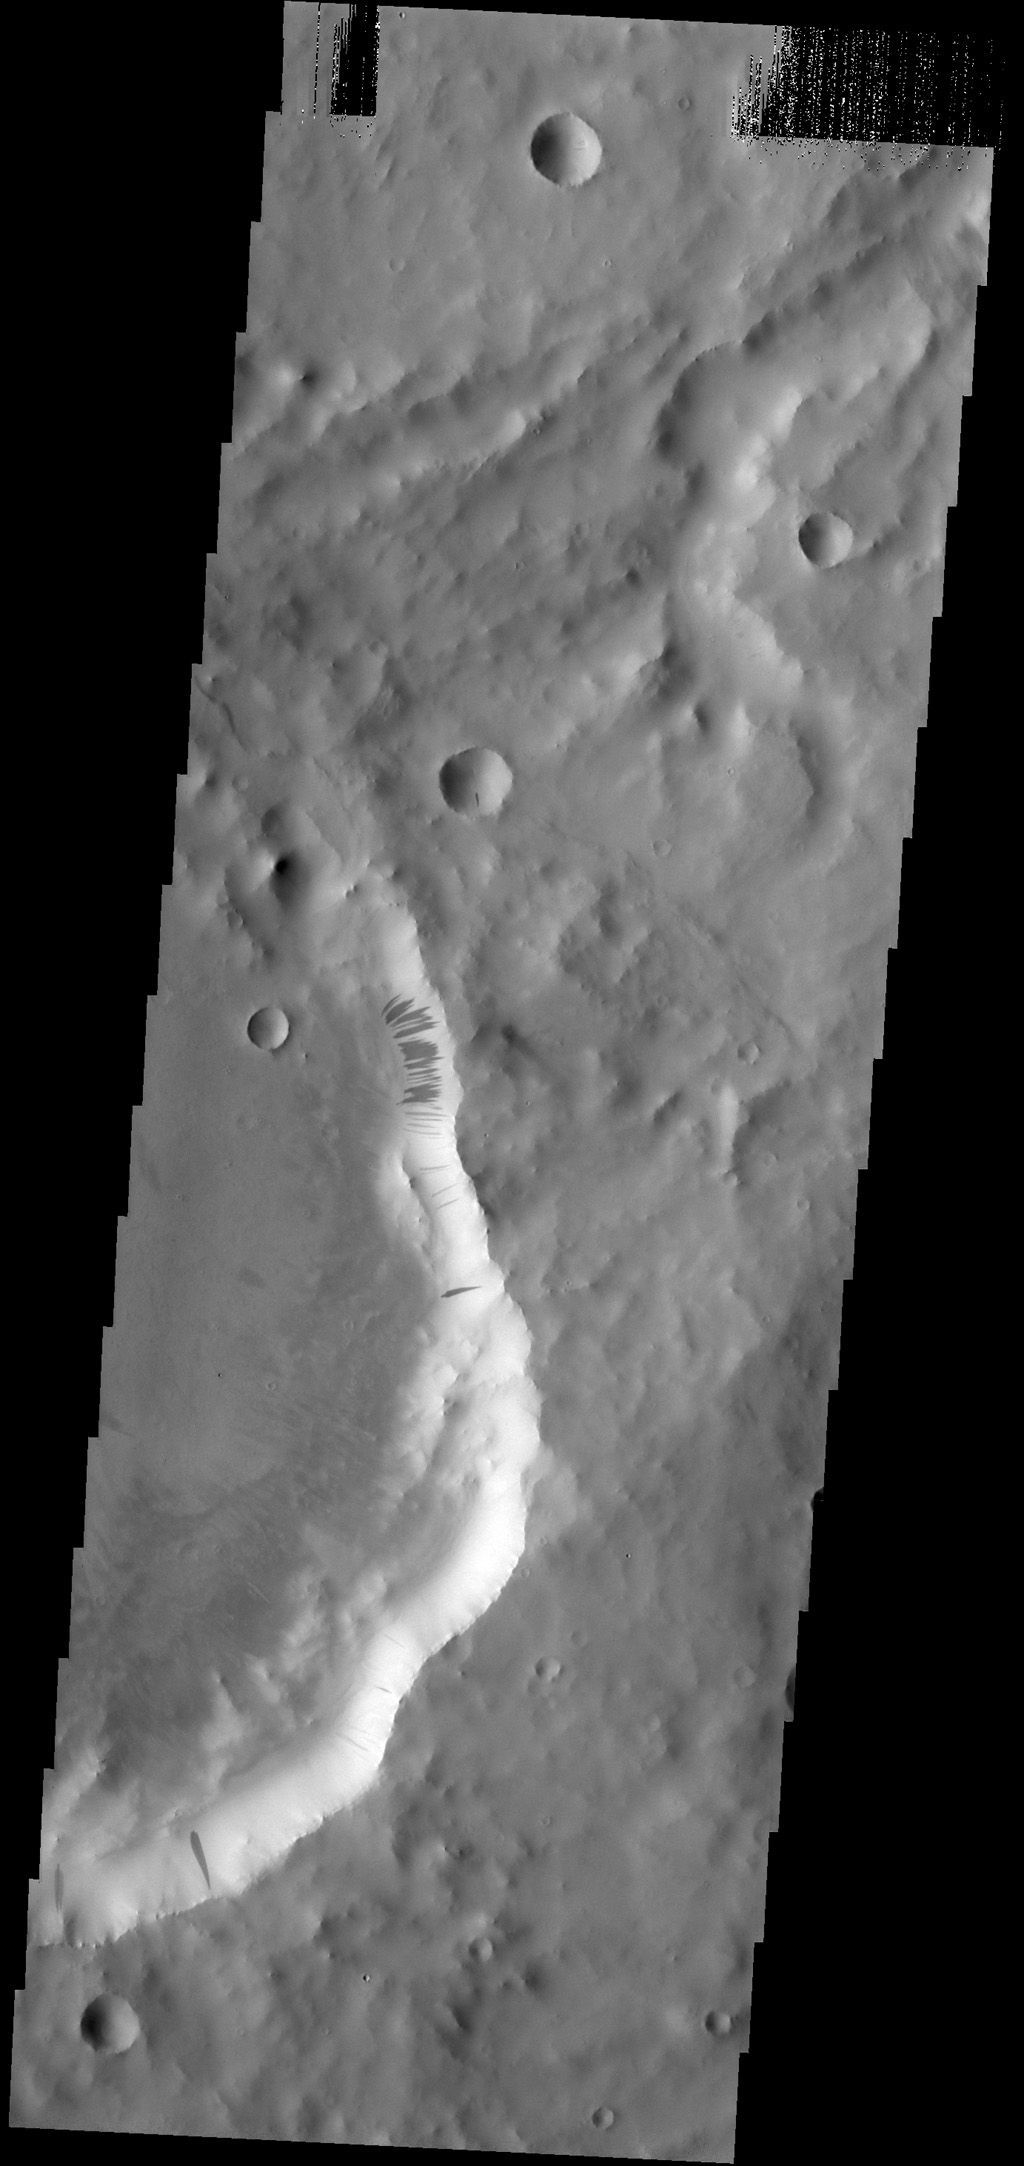 Many dark slope streaks mark the rim of this unnamed crater in Terra Sabaea in this image from NASA's 2001 Mars Odyssey spacecraft.